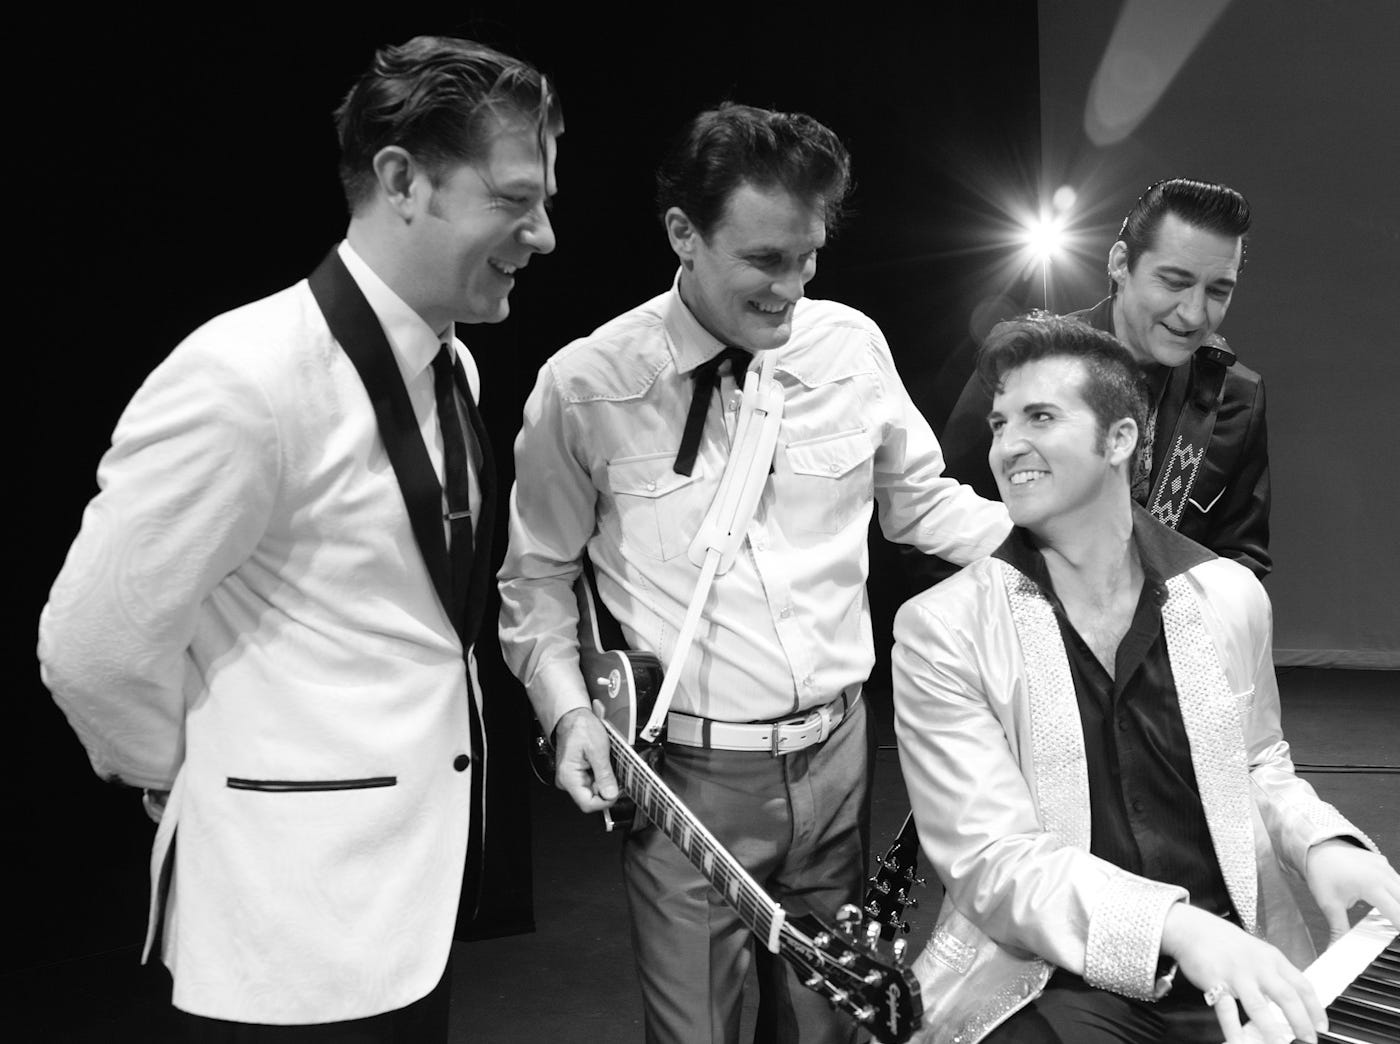 The show recreates the magical night of December 4, 1956 when Elvis Presley, Carl Perkins, Jerry Lee Lewis and Johnny Cash found themselves jamming at Sam Phillip's Sun Studios in Memphis.